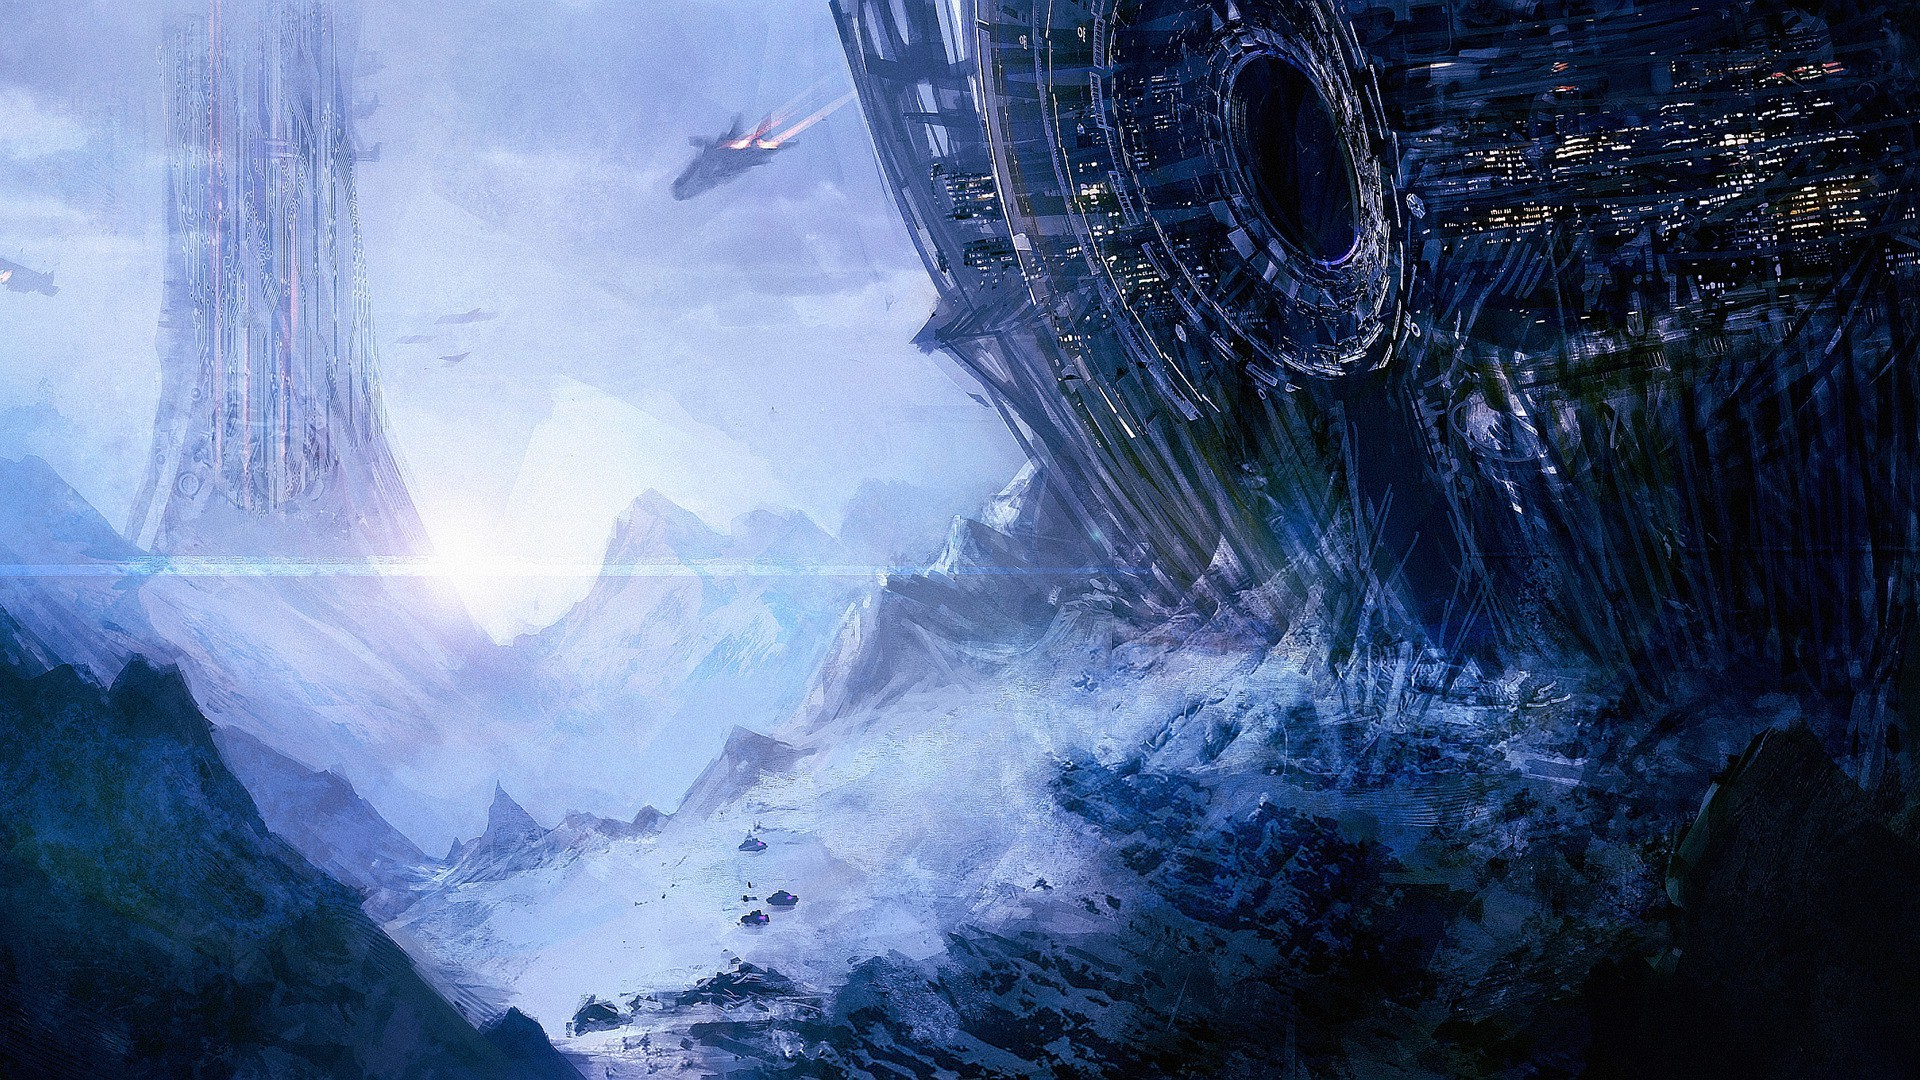 Fantasy space wallpapers 71 images - Art wallpaper hd for mobile ...